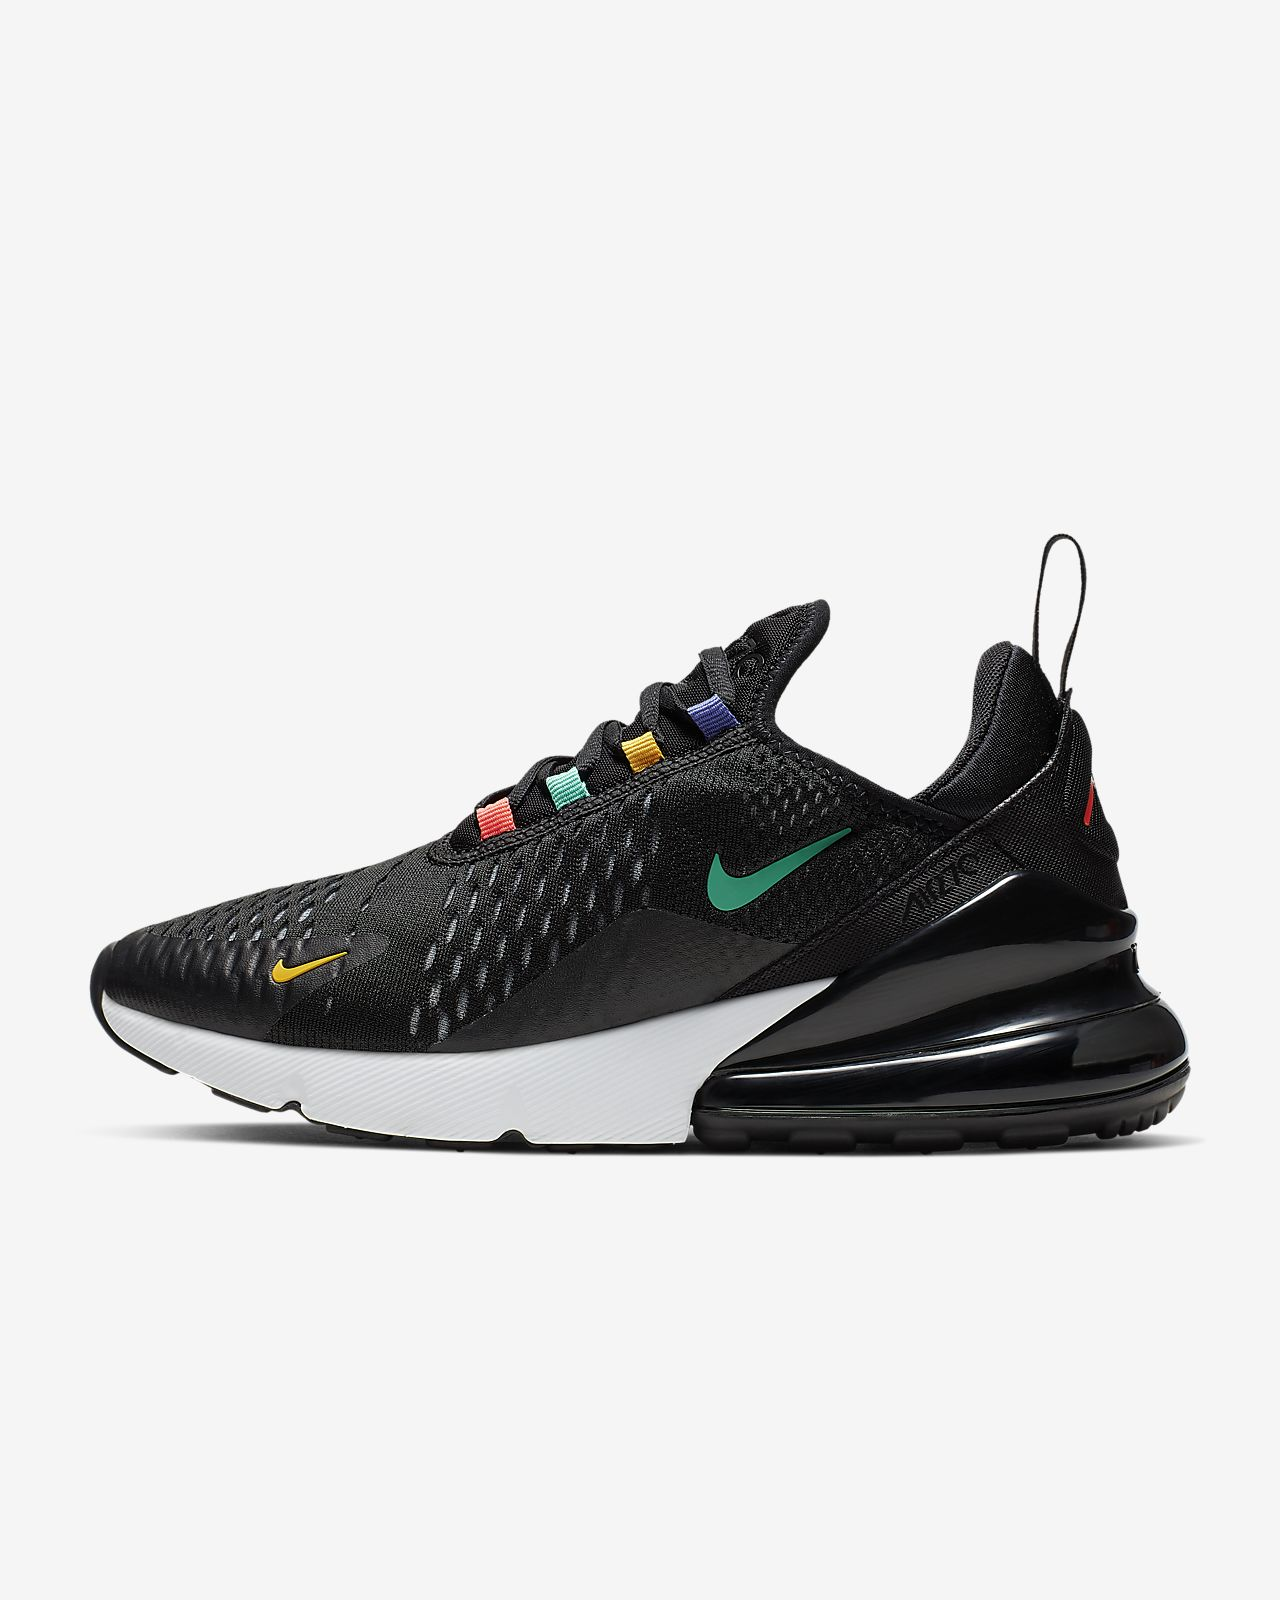 4d94d193 Nike Air Max 270 Women's Shoe. Nike.com